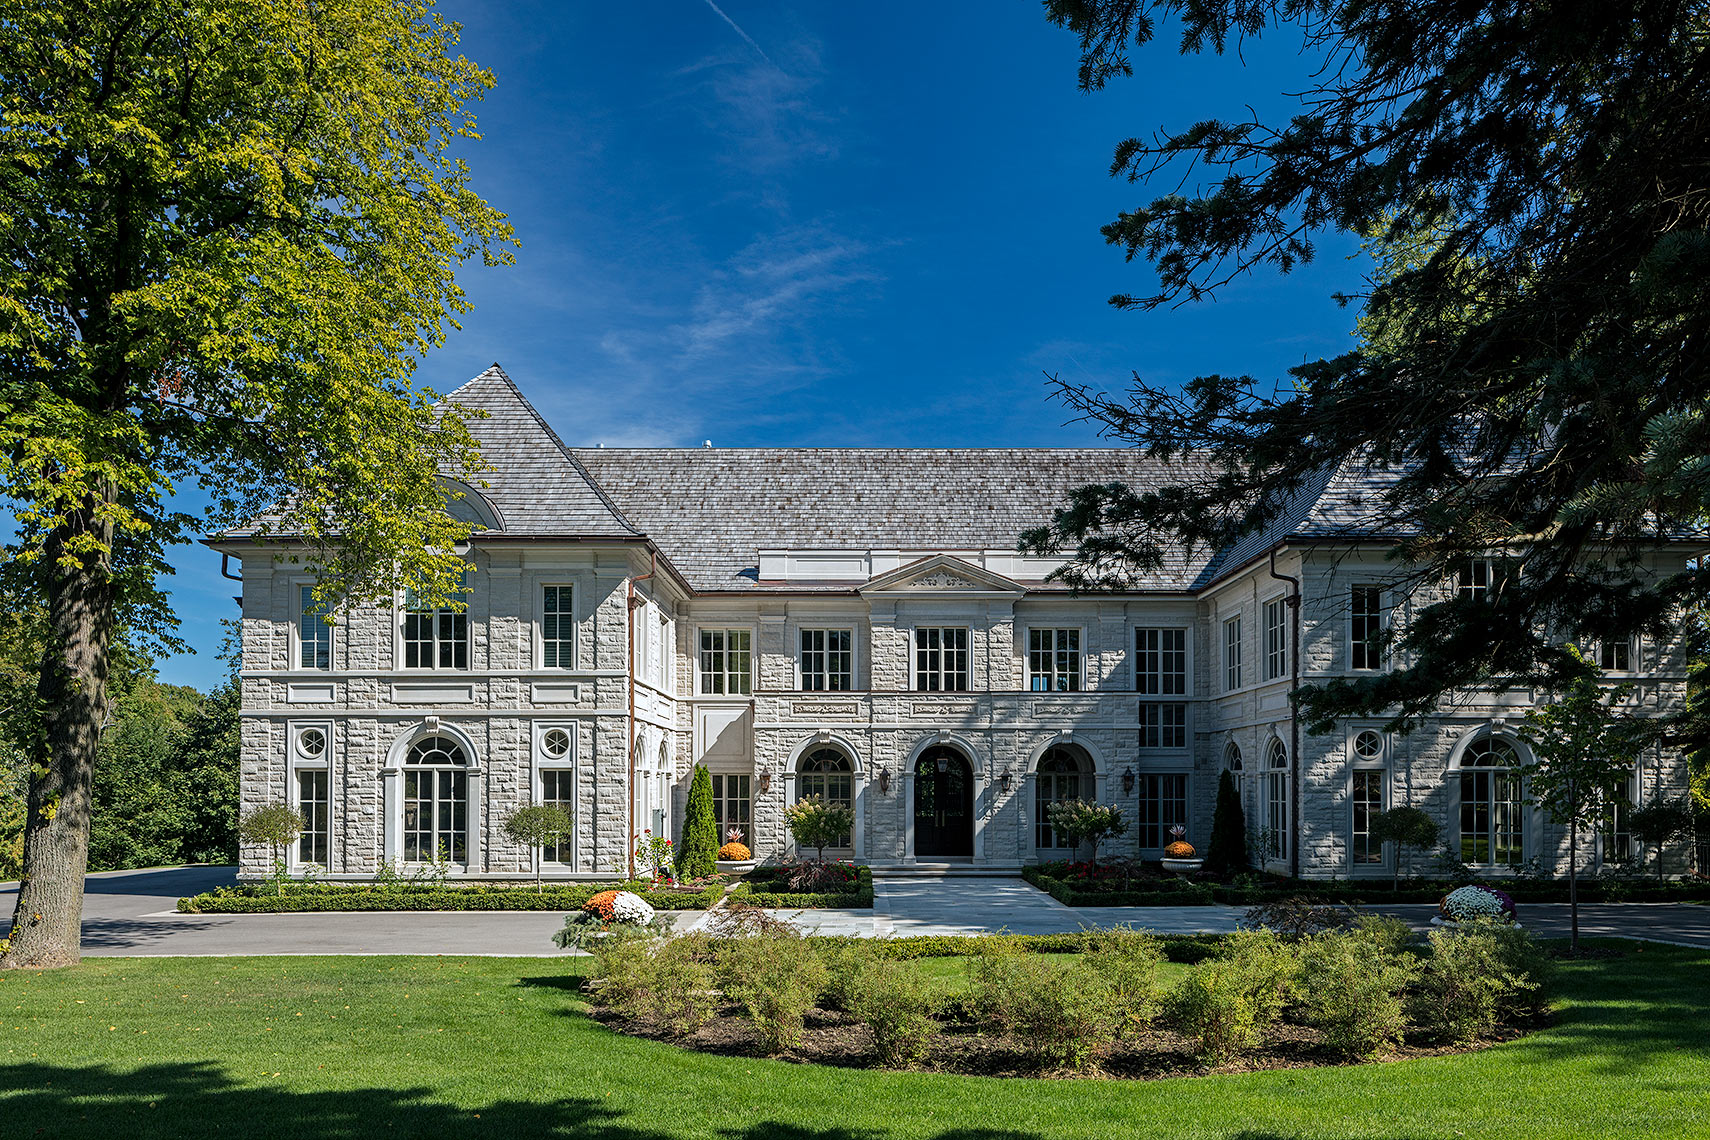 0-customhomes-luxuryhomes-neoclassical-MakowArchitects-001